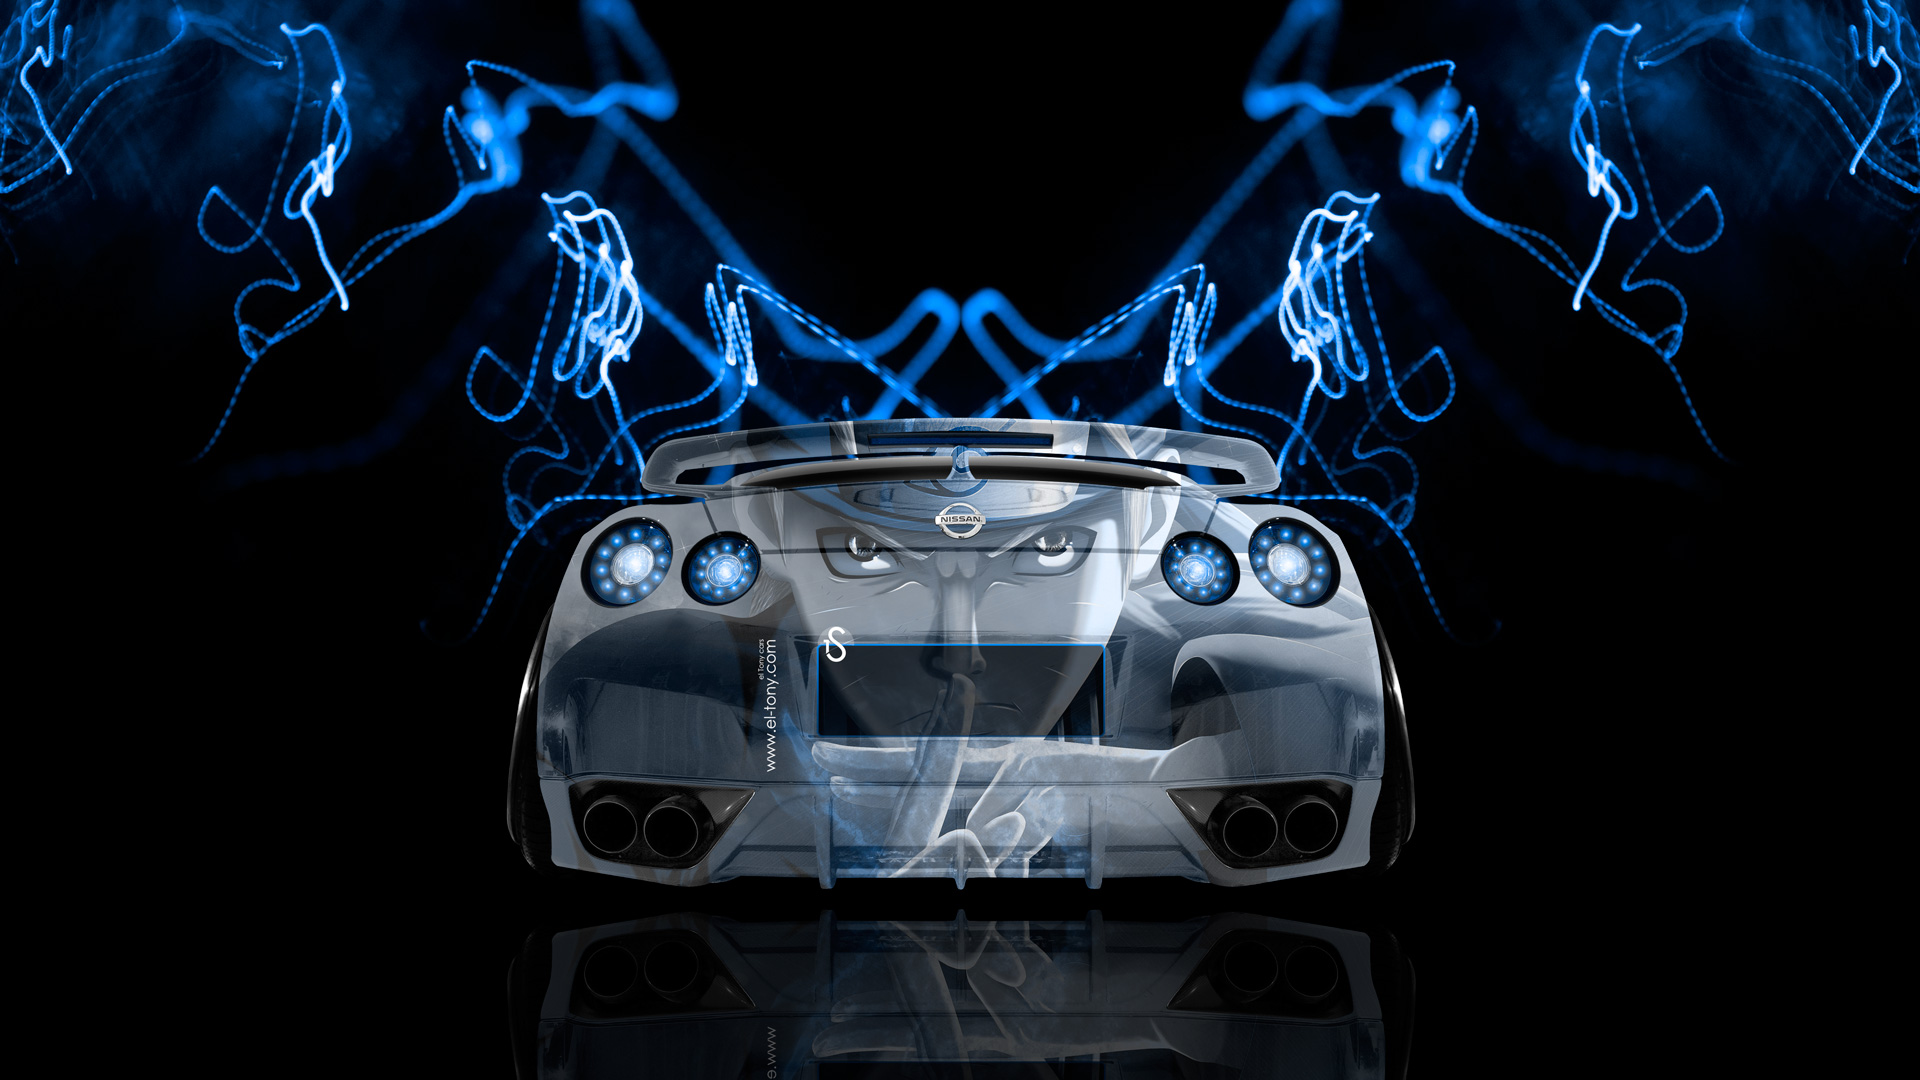 Nissan GTR R35 Back Anime Aerography Car 2014